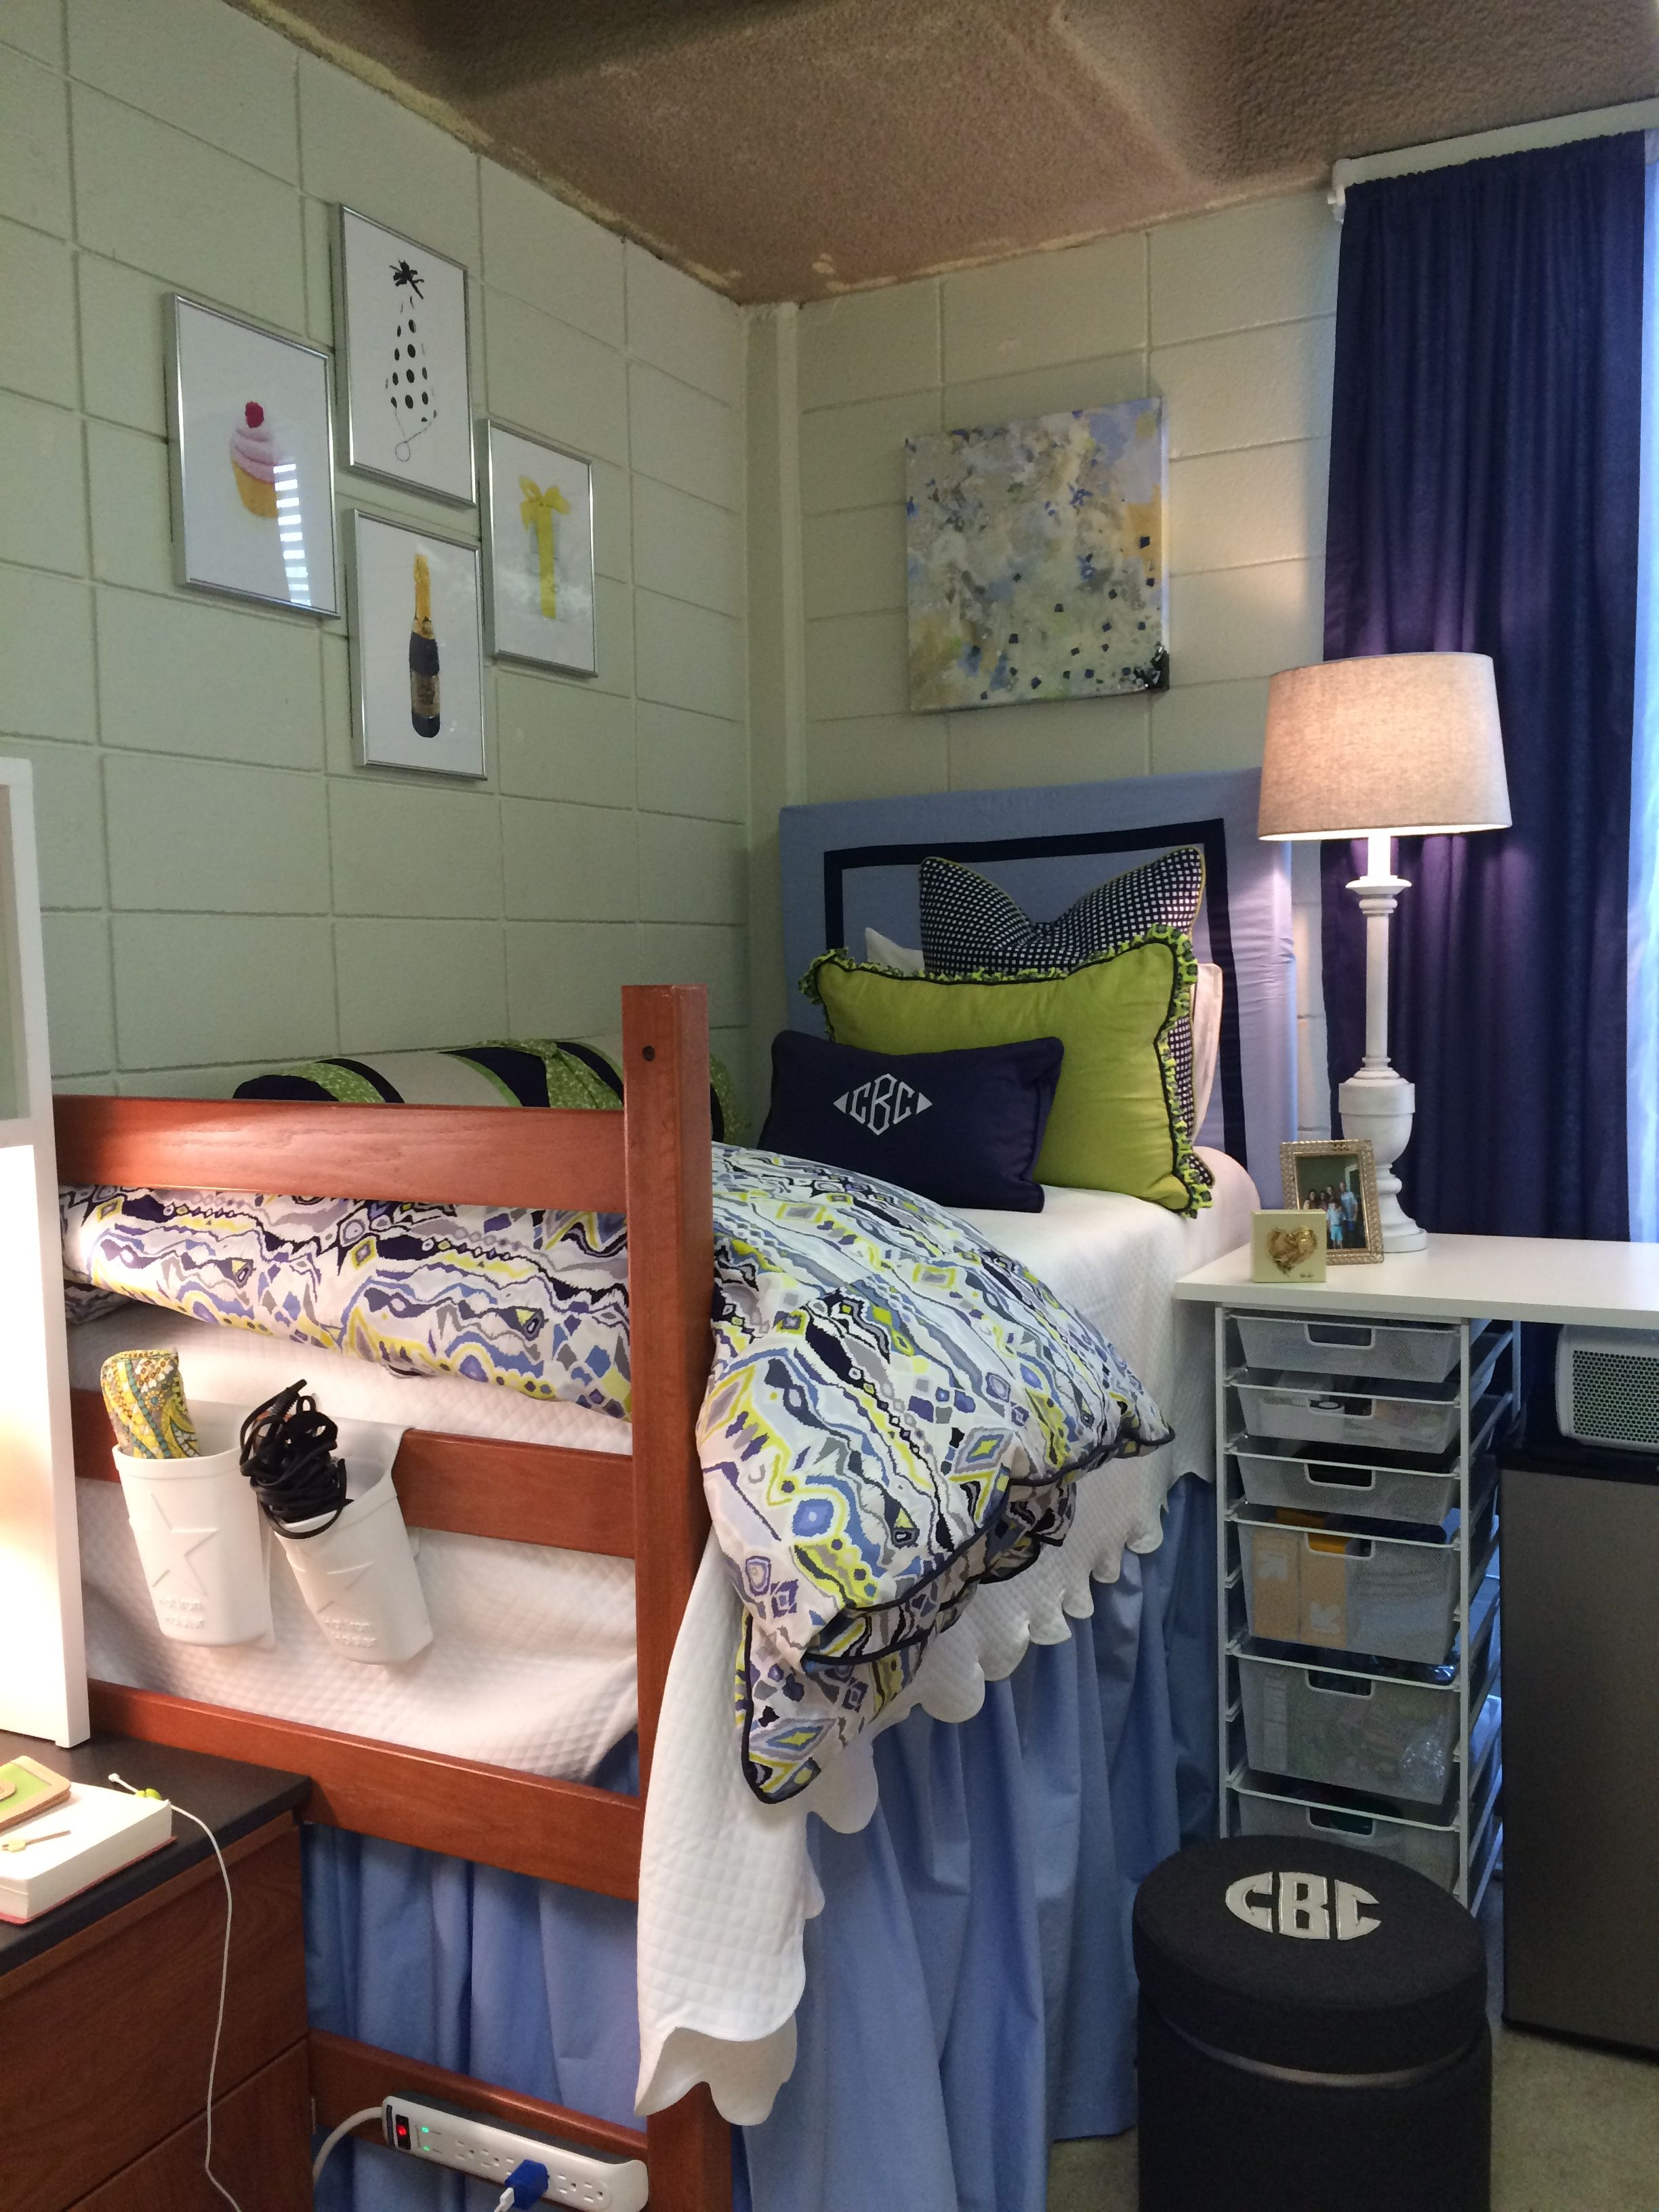 Miller dorm lsu bedding by blue moon bedding bedside table is miller dorm lsu bedding by blue moon bedding bedside table is container store elfa desk prints on the left wall are from coco and ollie watchthetrailerfo